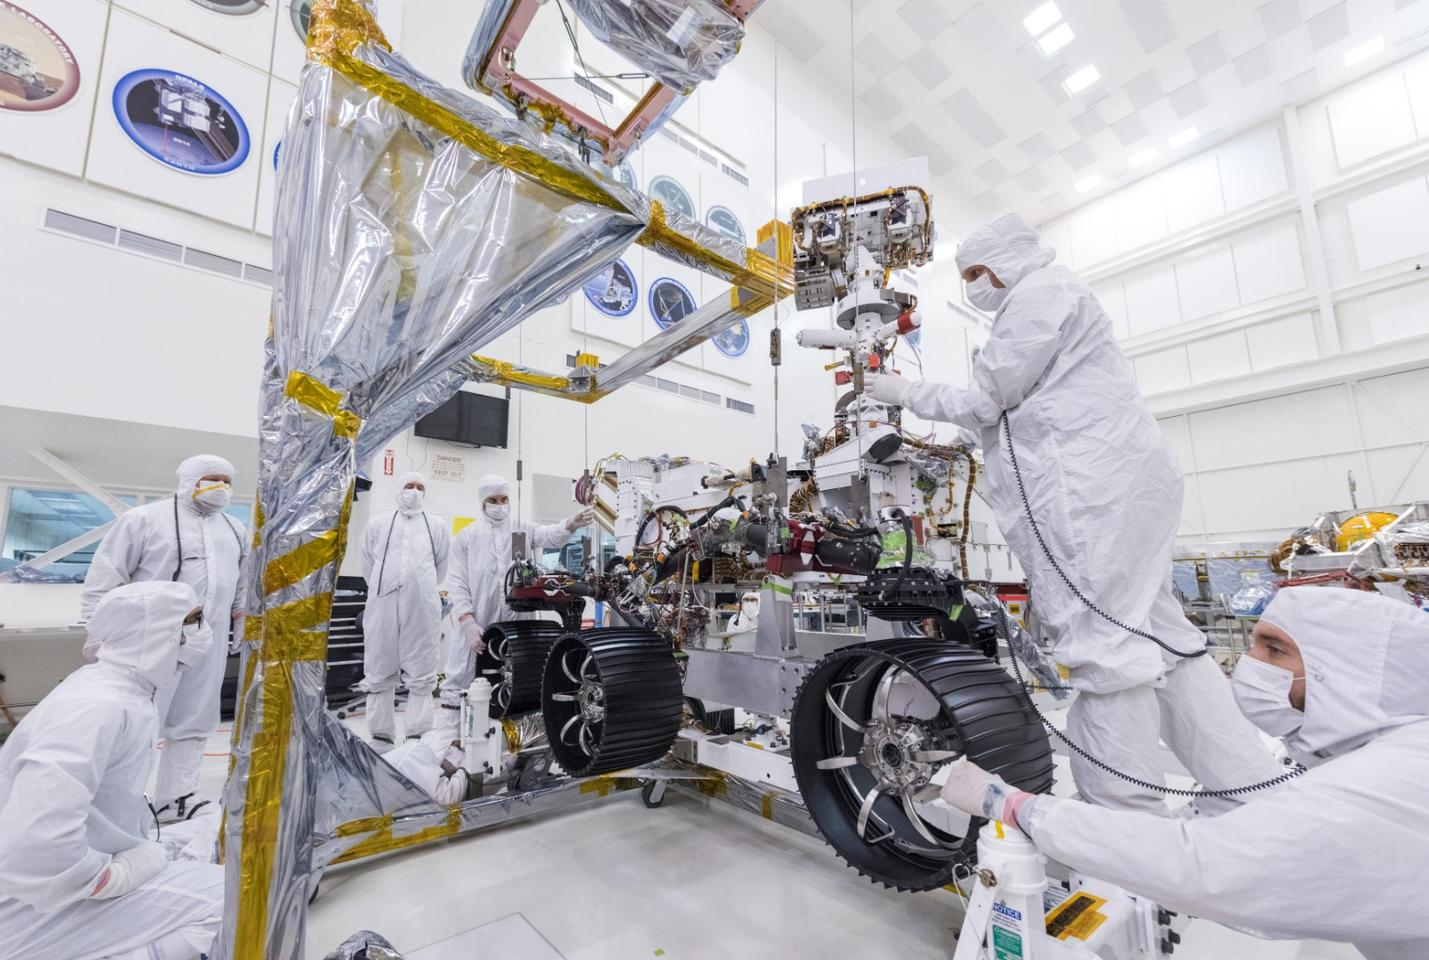 Engineers prepare the starboard legs and wheels for integration onto NASA's Mars 2020 rover